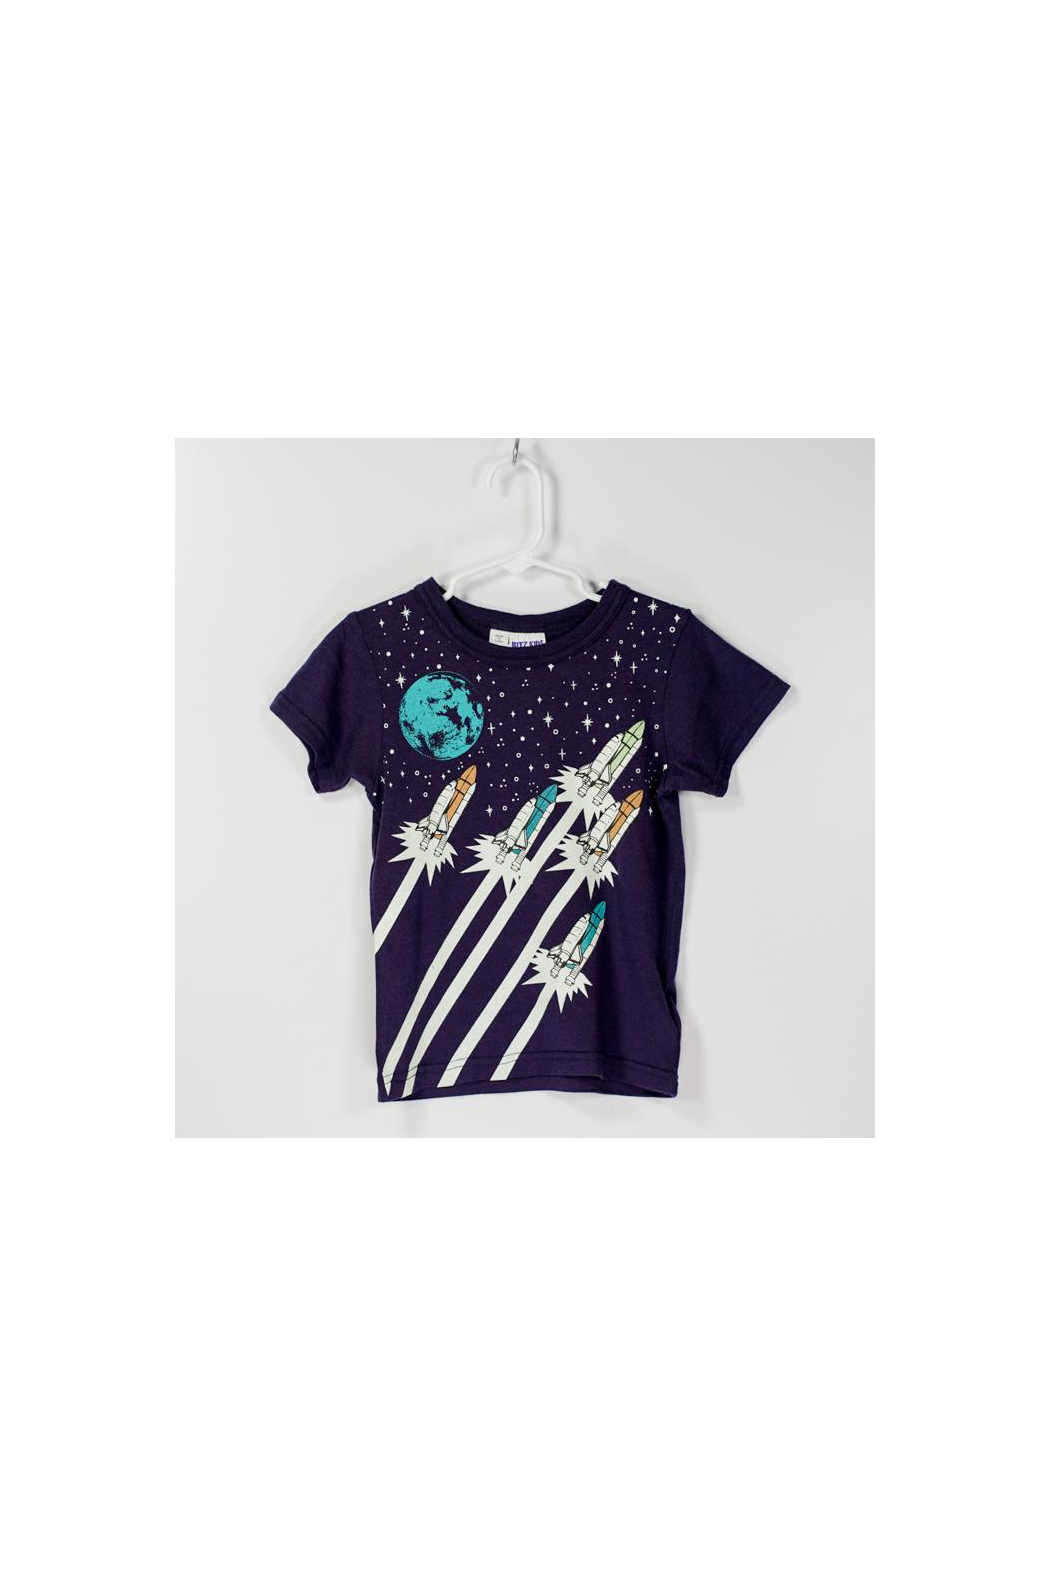 Bit'z Kids Glow In The Dark Space Trip Tee - Front Cropped Image